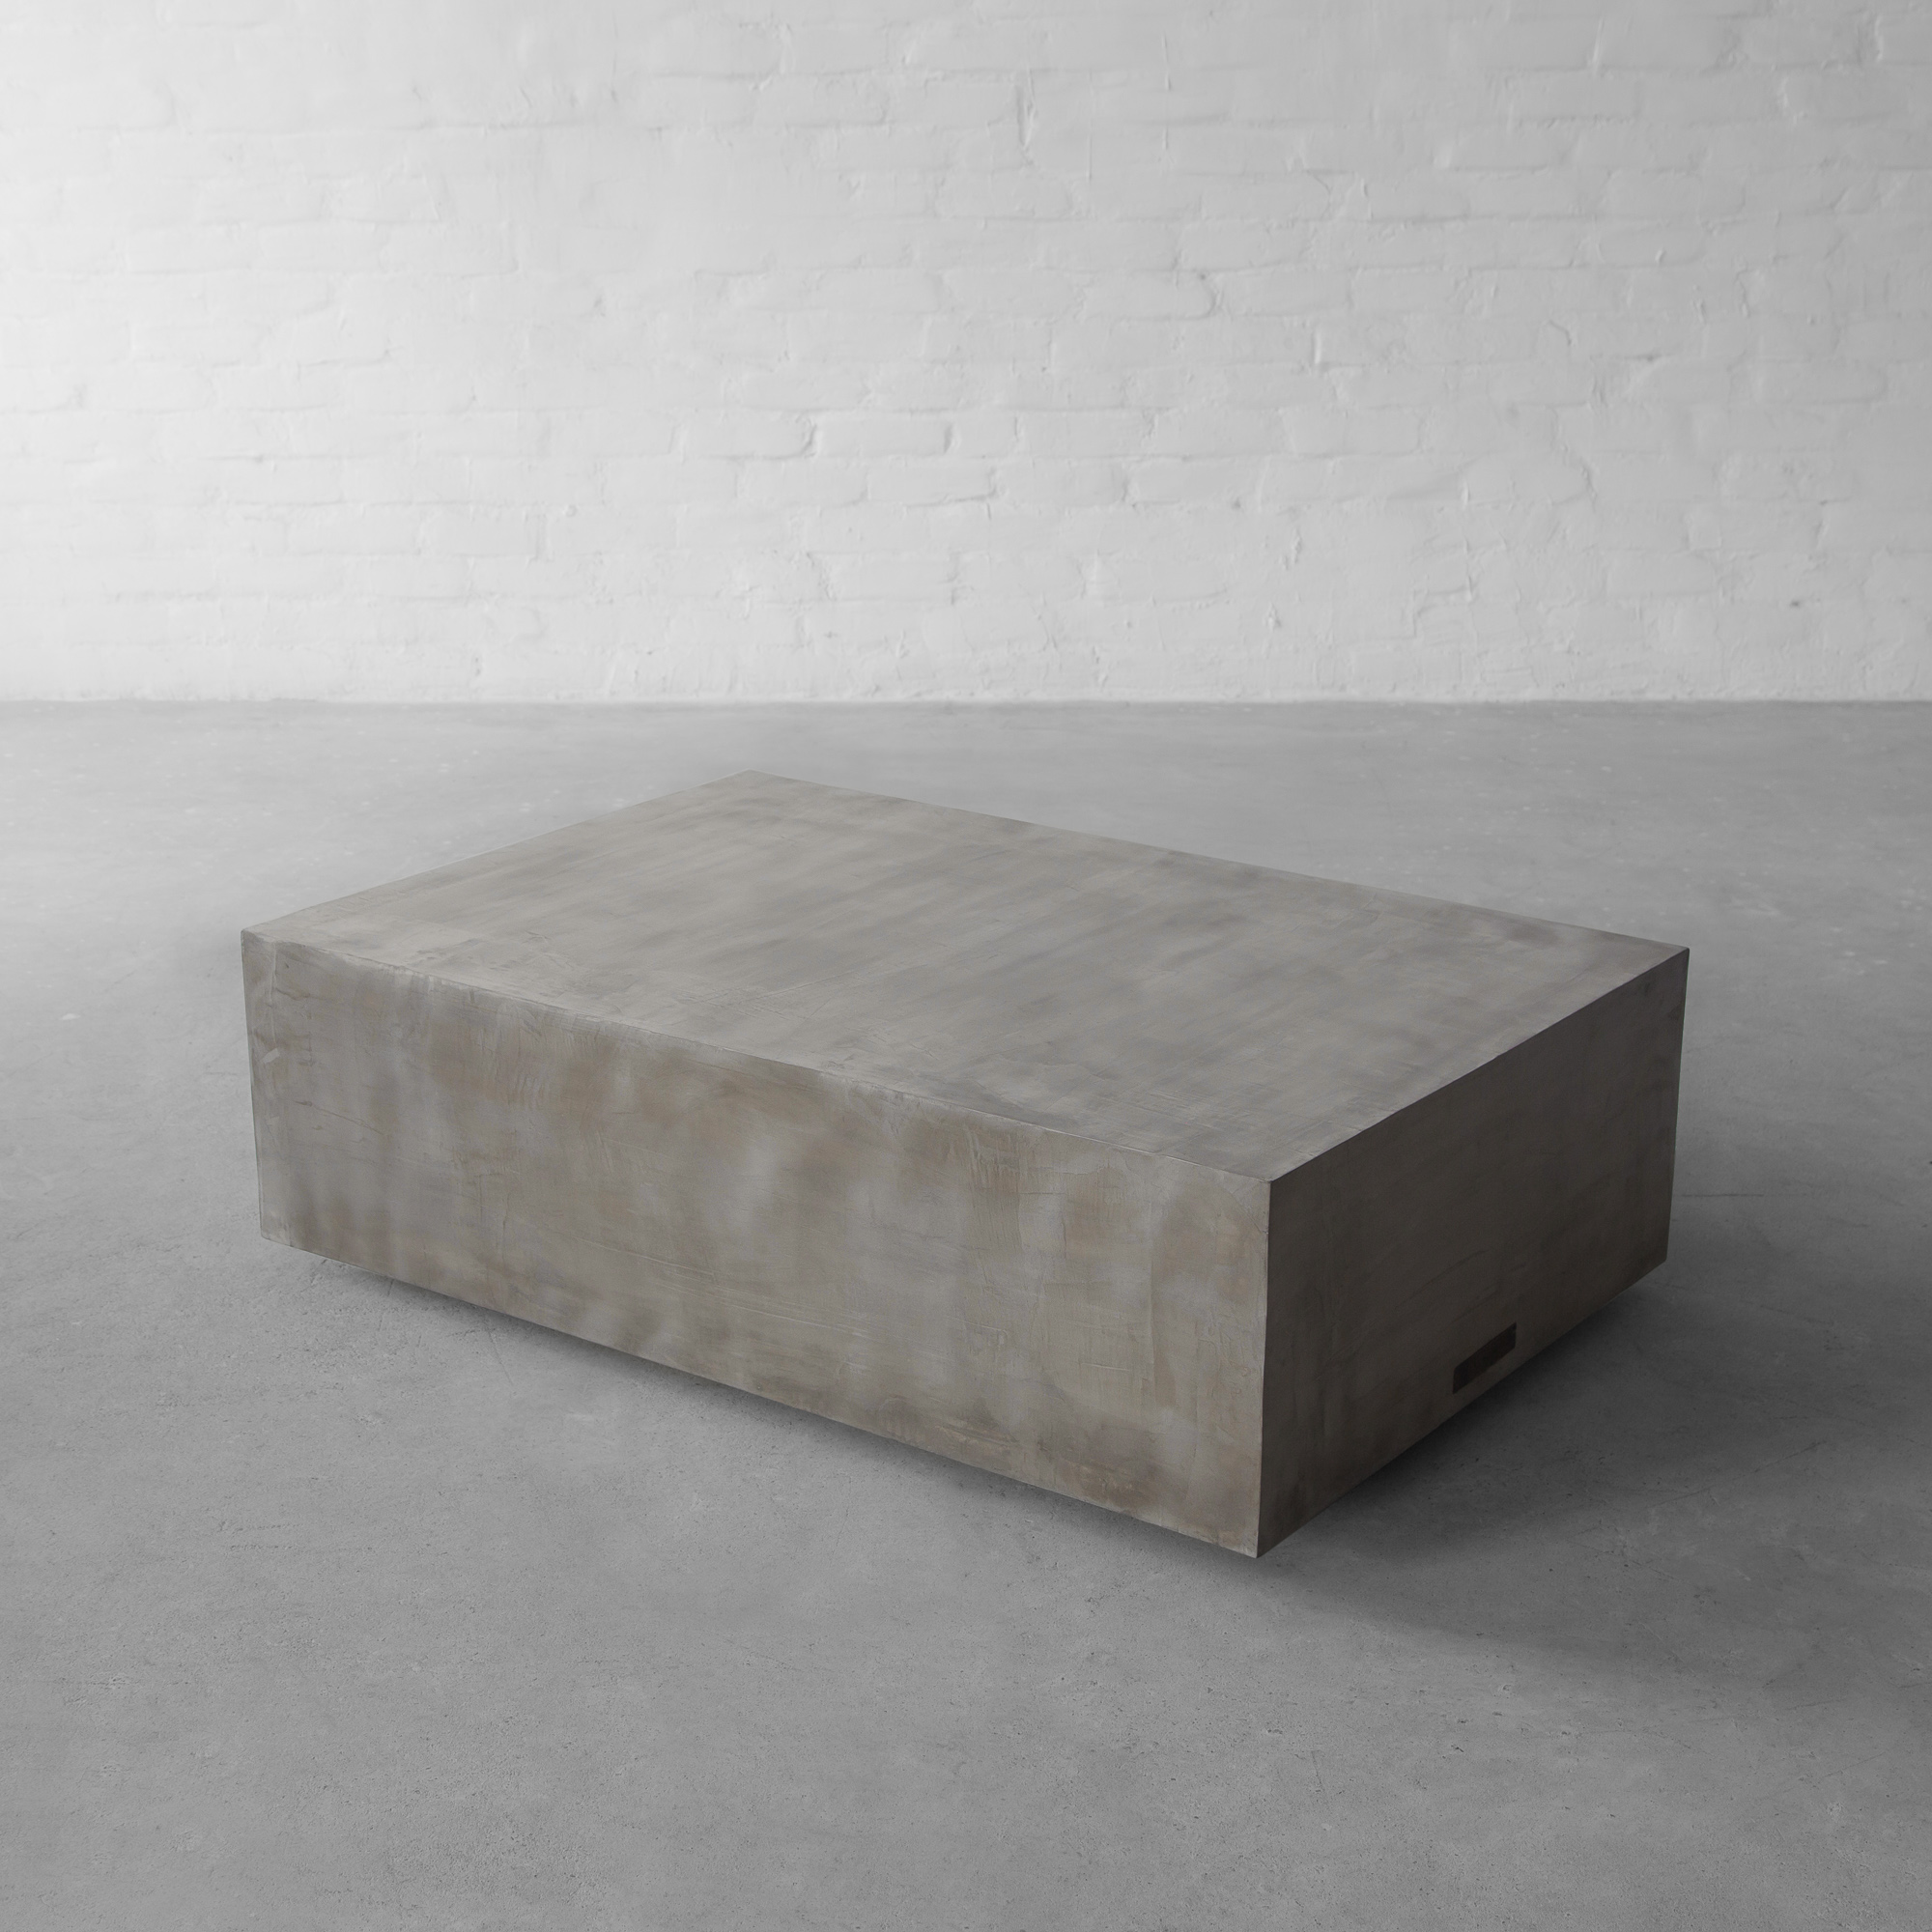 Concrete Island: Block Coffee Table